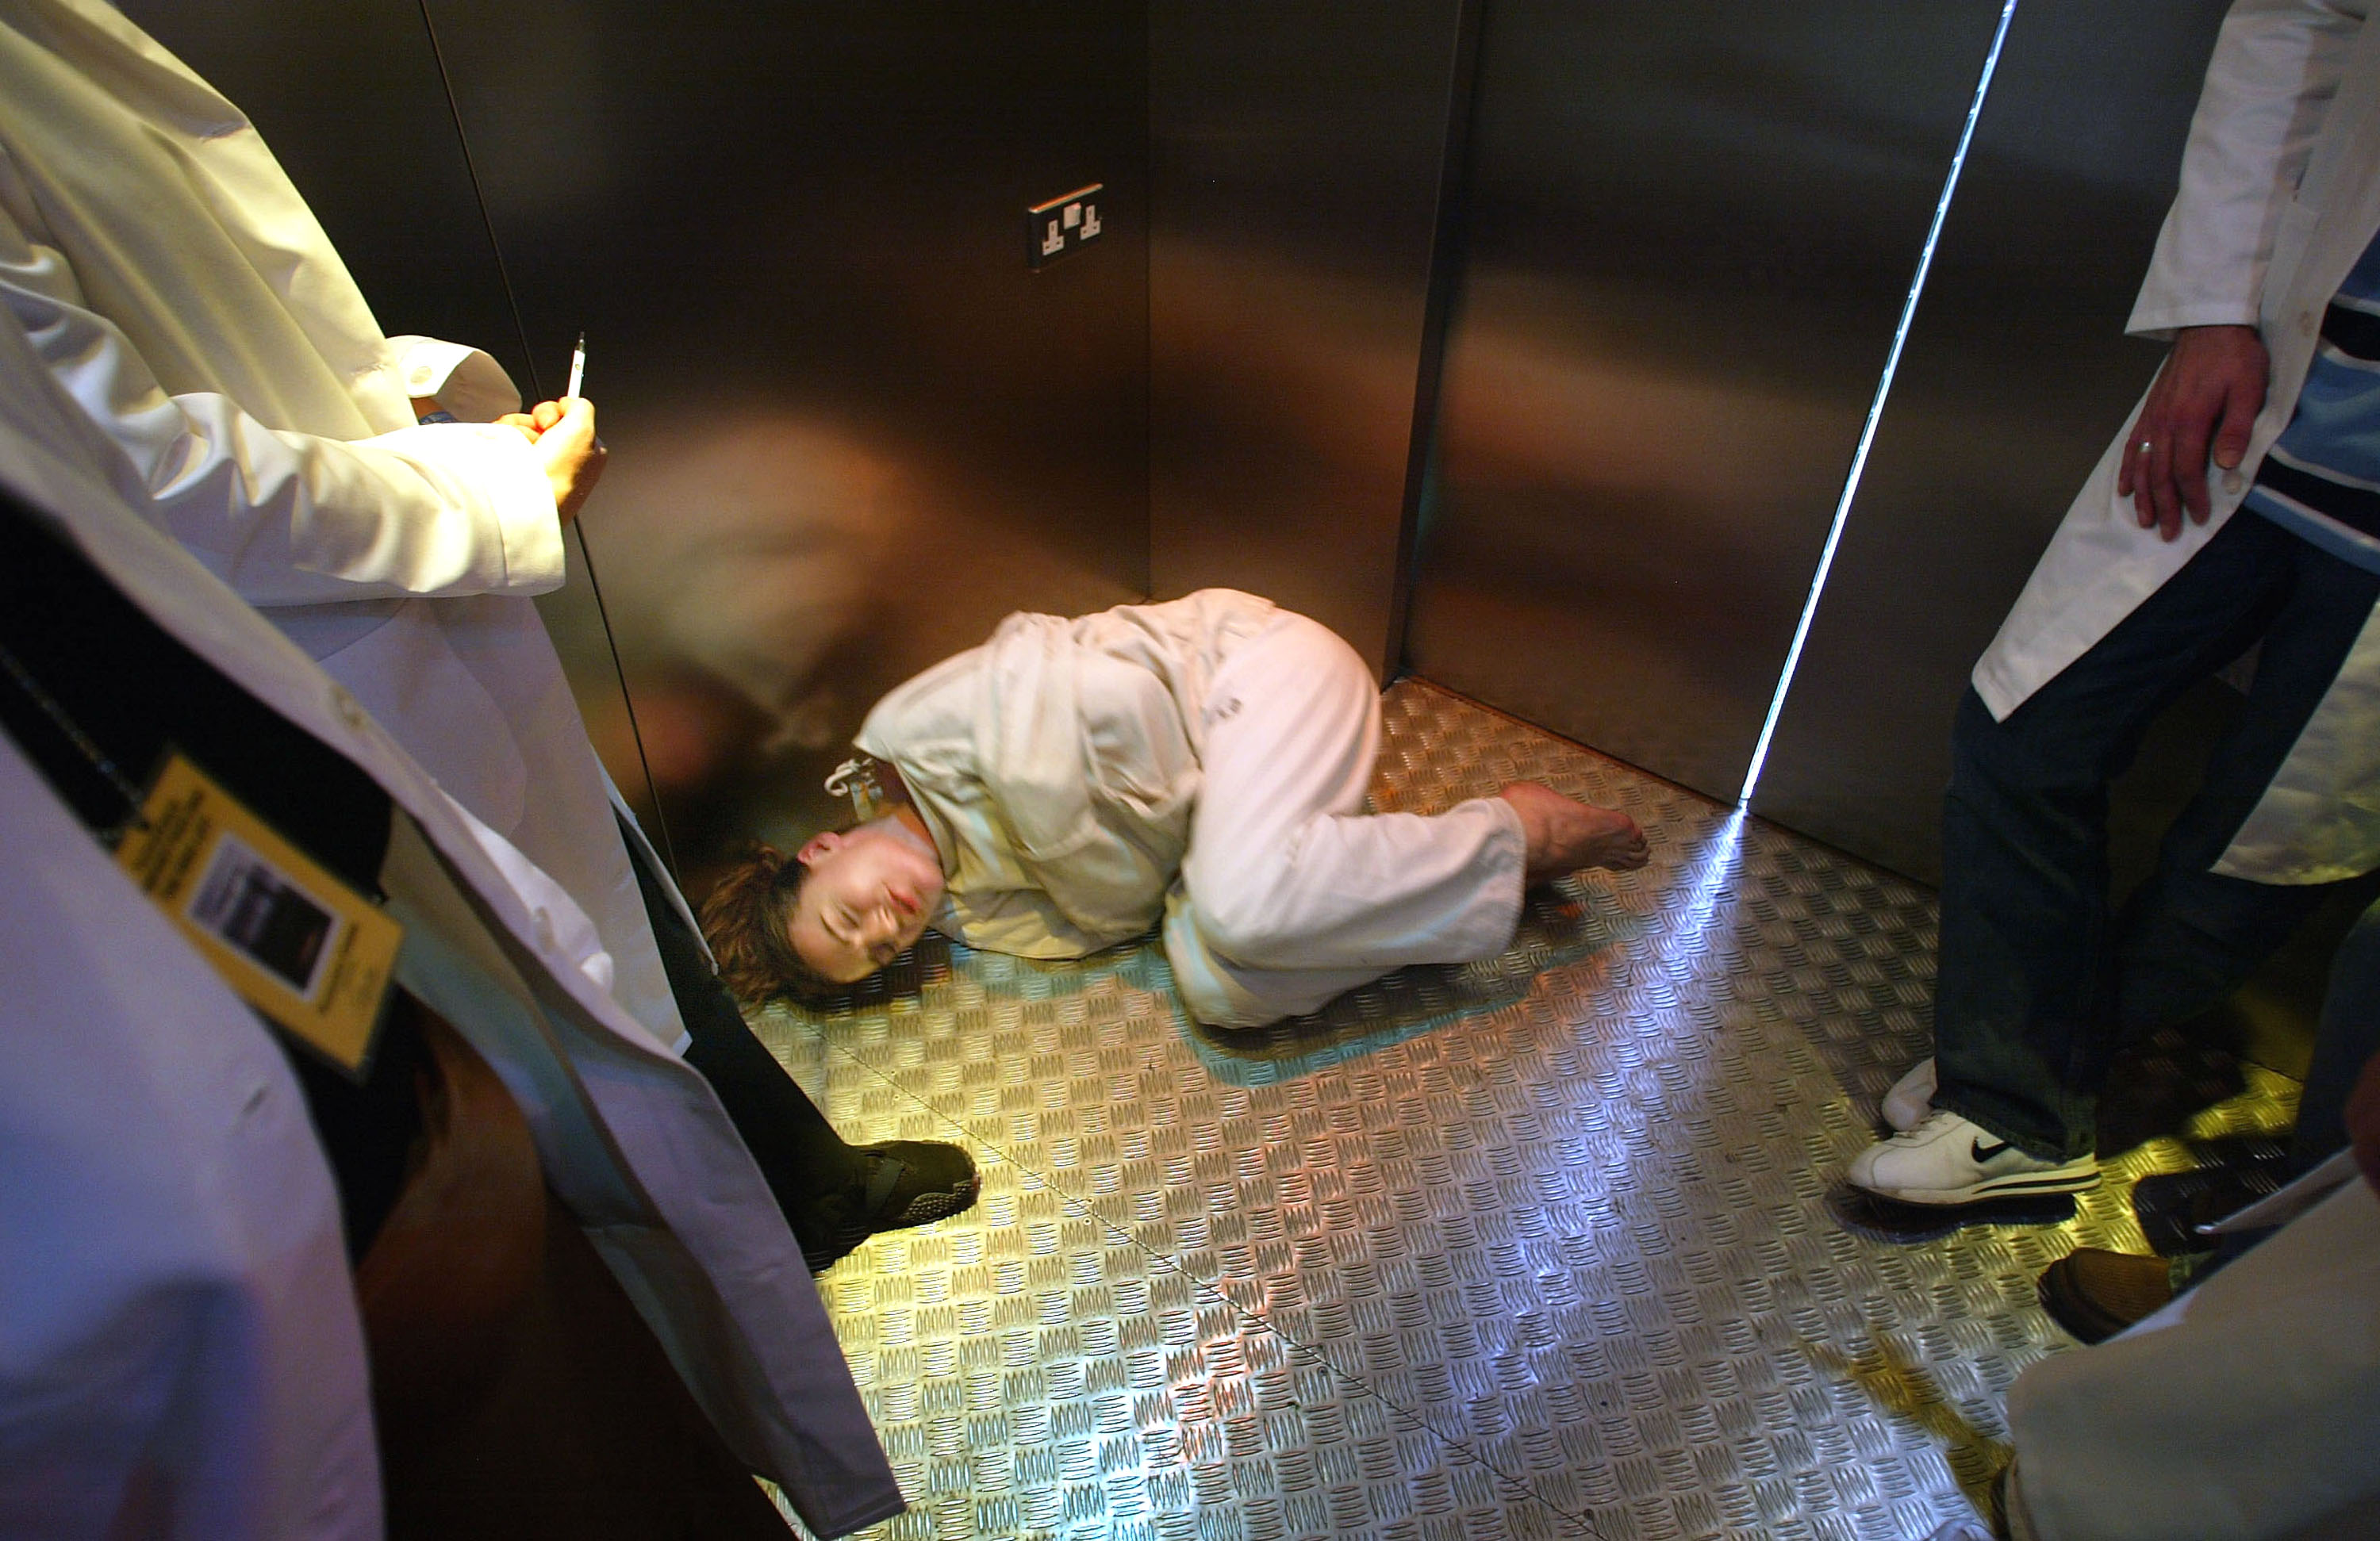 EDINBURGH, SCOTLAND - AUGUST 4: Kiki Kendrick acts in a straitjacket during her solo performance 'Insane Jane' performed inside a lift at the 57th Edinburgh Fringe Festival 2003 August 4, 2003 in Edinburgh, Scotland.